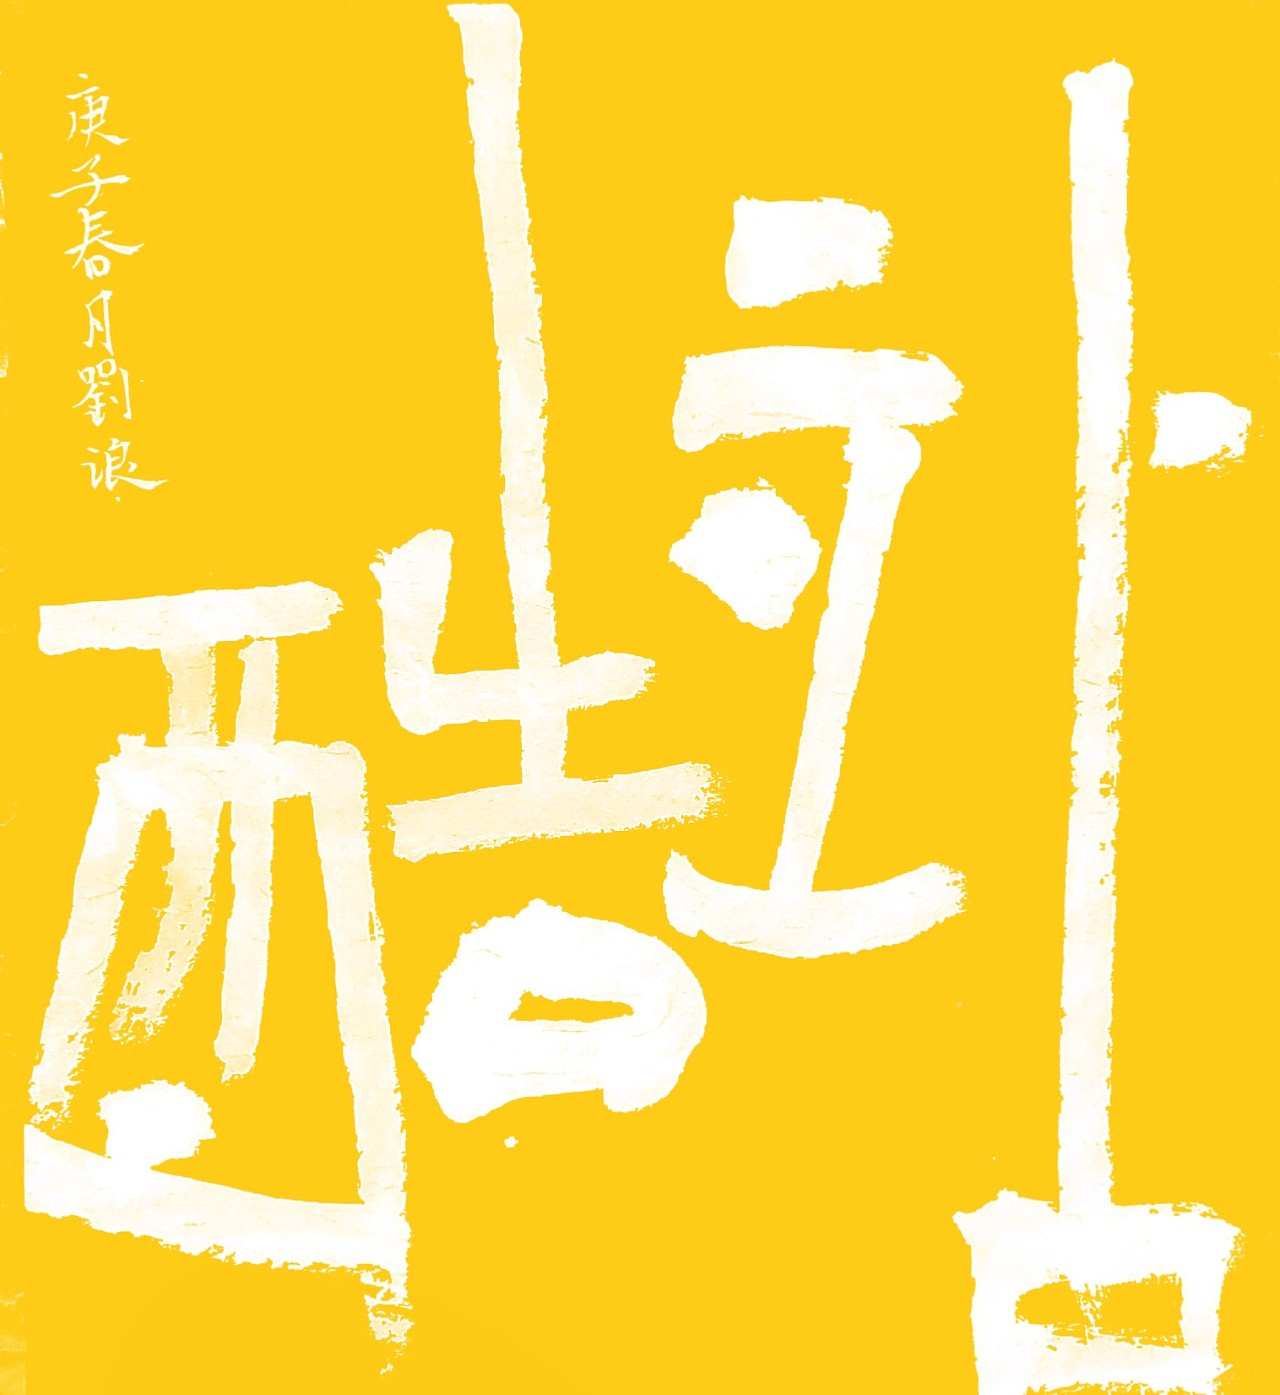 Chinese Creative Font DesignFrom general symmetrical constitution to complex repeated constitution